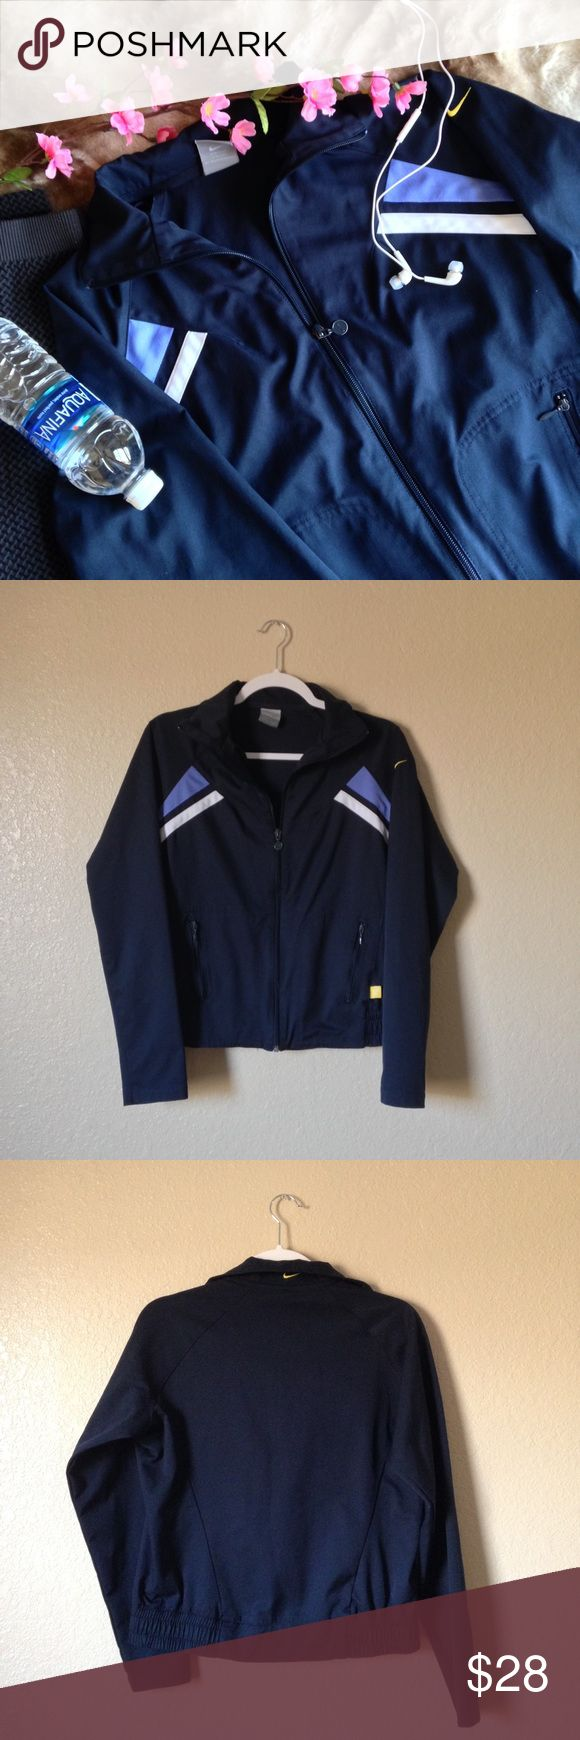 Nike Zip-Up Athletic Jacket Super cute Nike windbreaker/jacket, in a classic navy blue with light blue and white stripes near the shoulders, features two front zipper pockets and elastic waist. Very flattering fit. In great gently used condition, only sign of wear is the paint on the zippers is a bit faded. Size L. I accept reasonable offers ☺ Nike Jackets & Coats